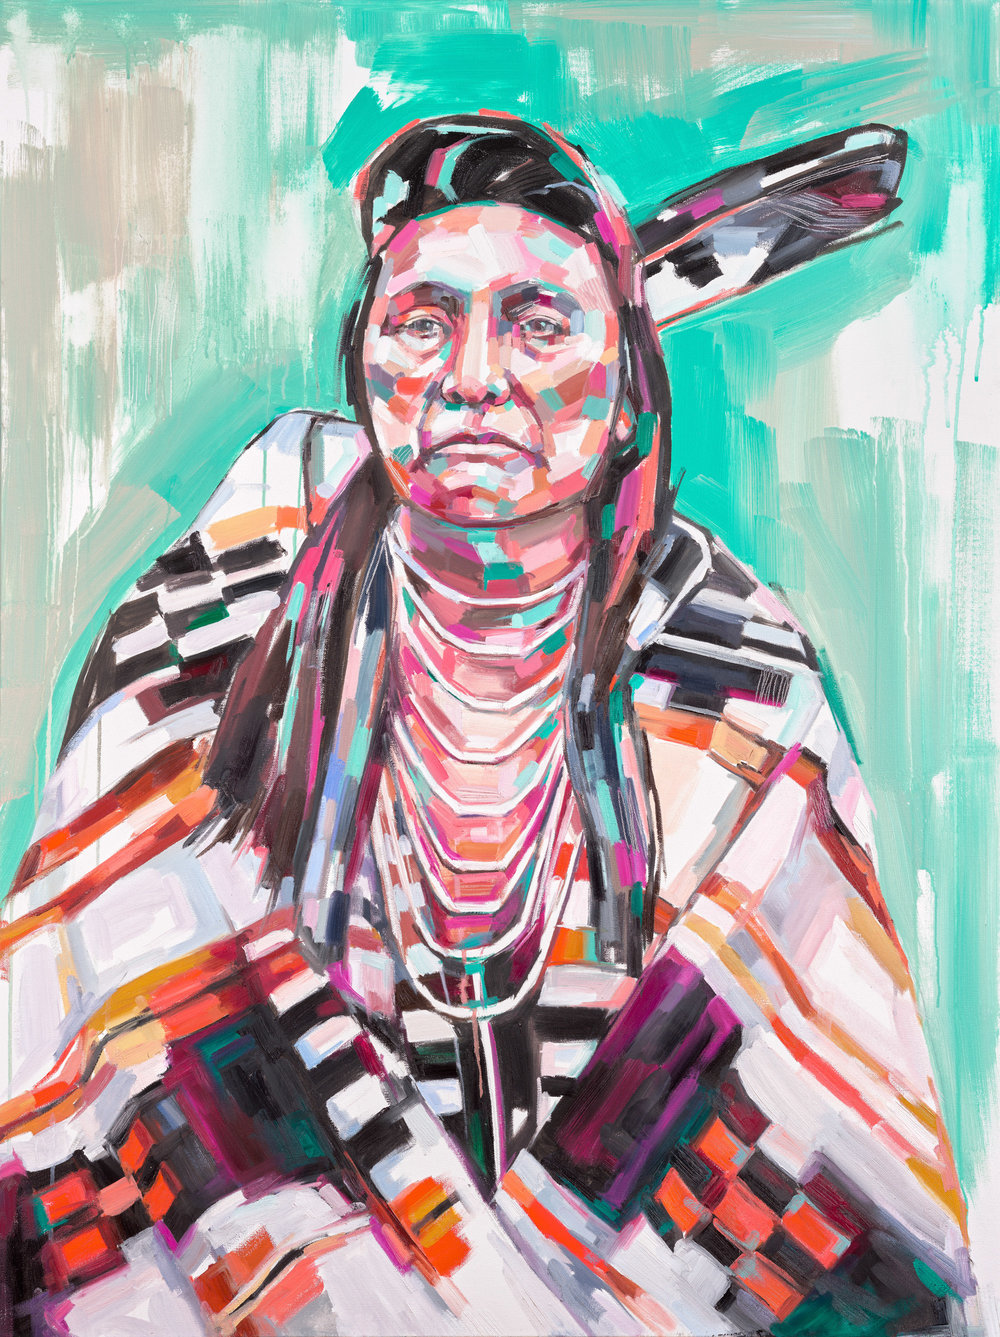 Chief Joseph Oil on canvas 36 x 48 inches Original sold 8.5 x 11 inch print - $25 13 x 19 inch print - $45